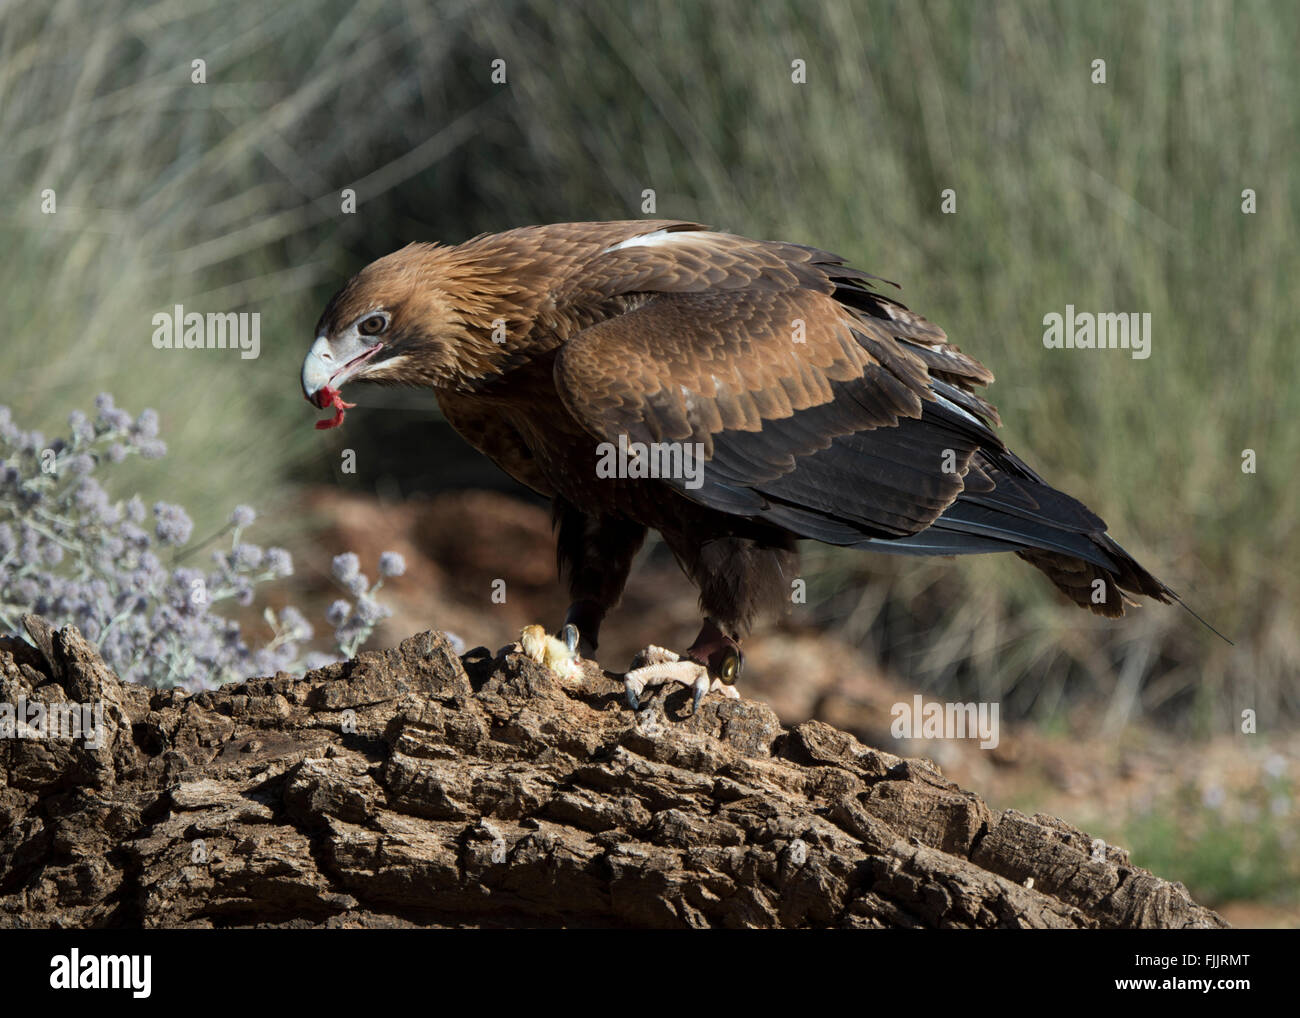 Wedge-tailed Eagles (Aquila audax), Alice Springs Desert Park, Northern Territory, Australia - Stock Image